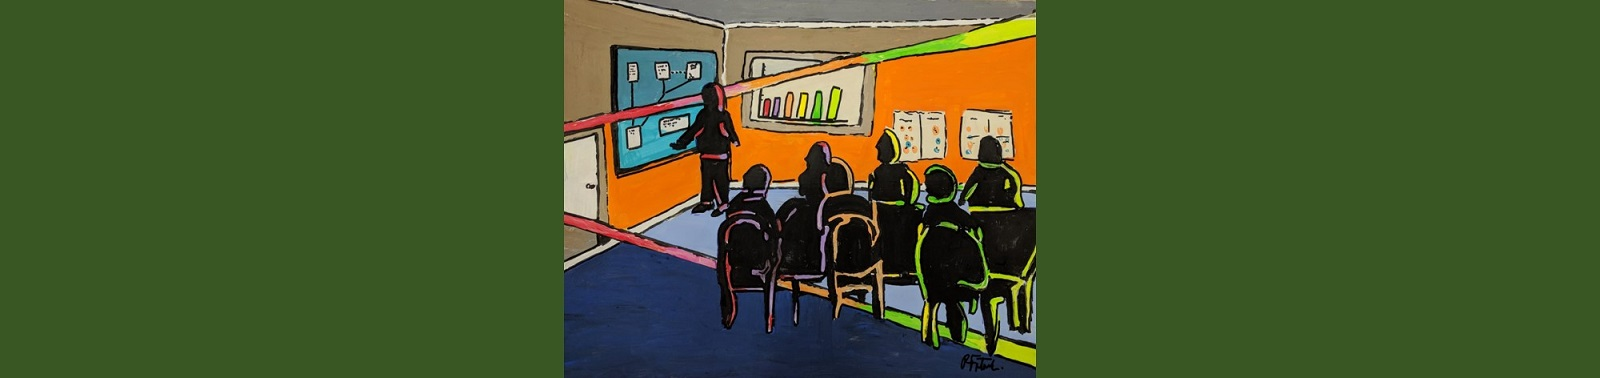 Painting of a meeting